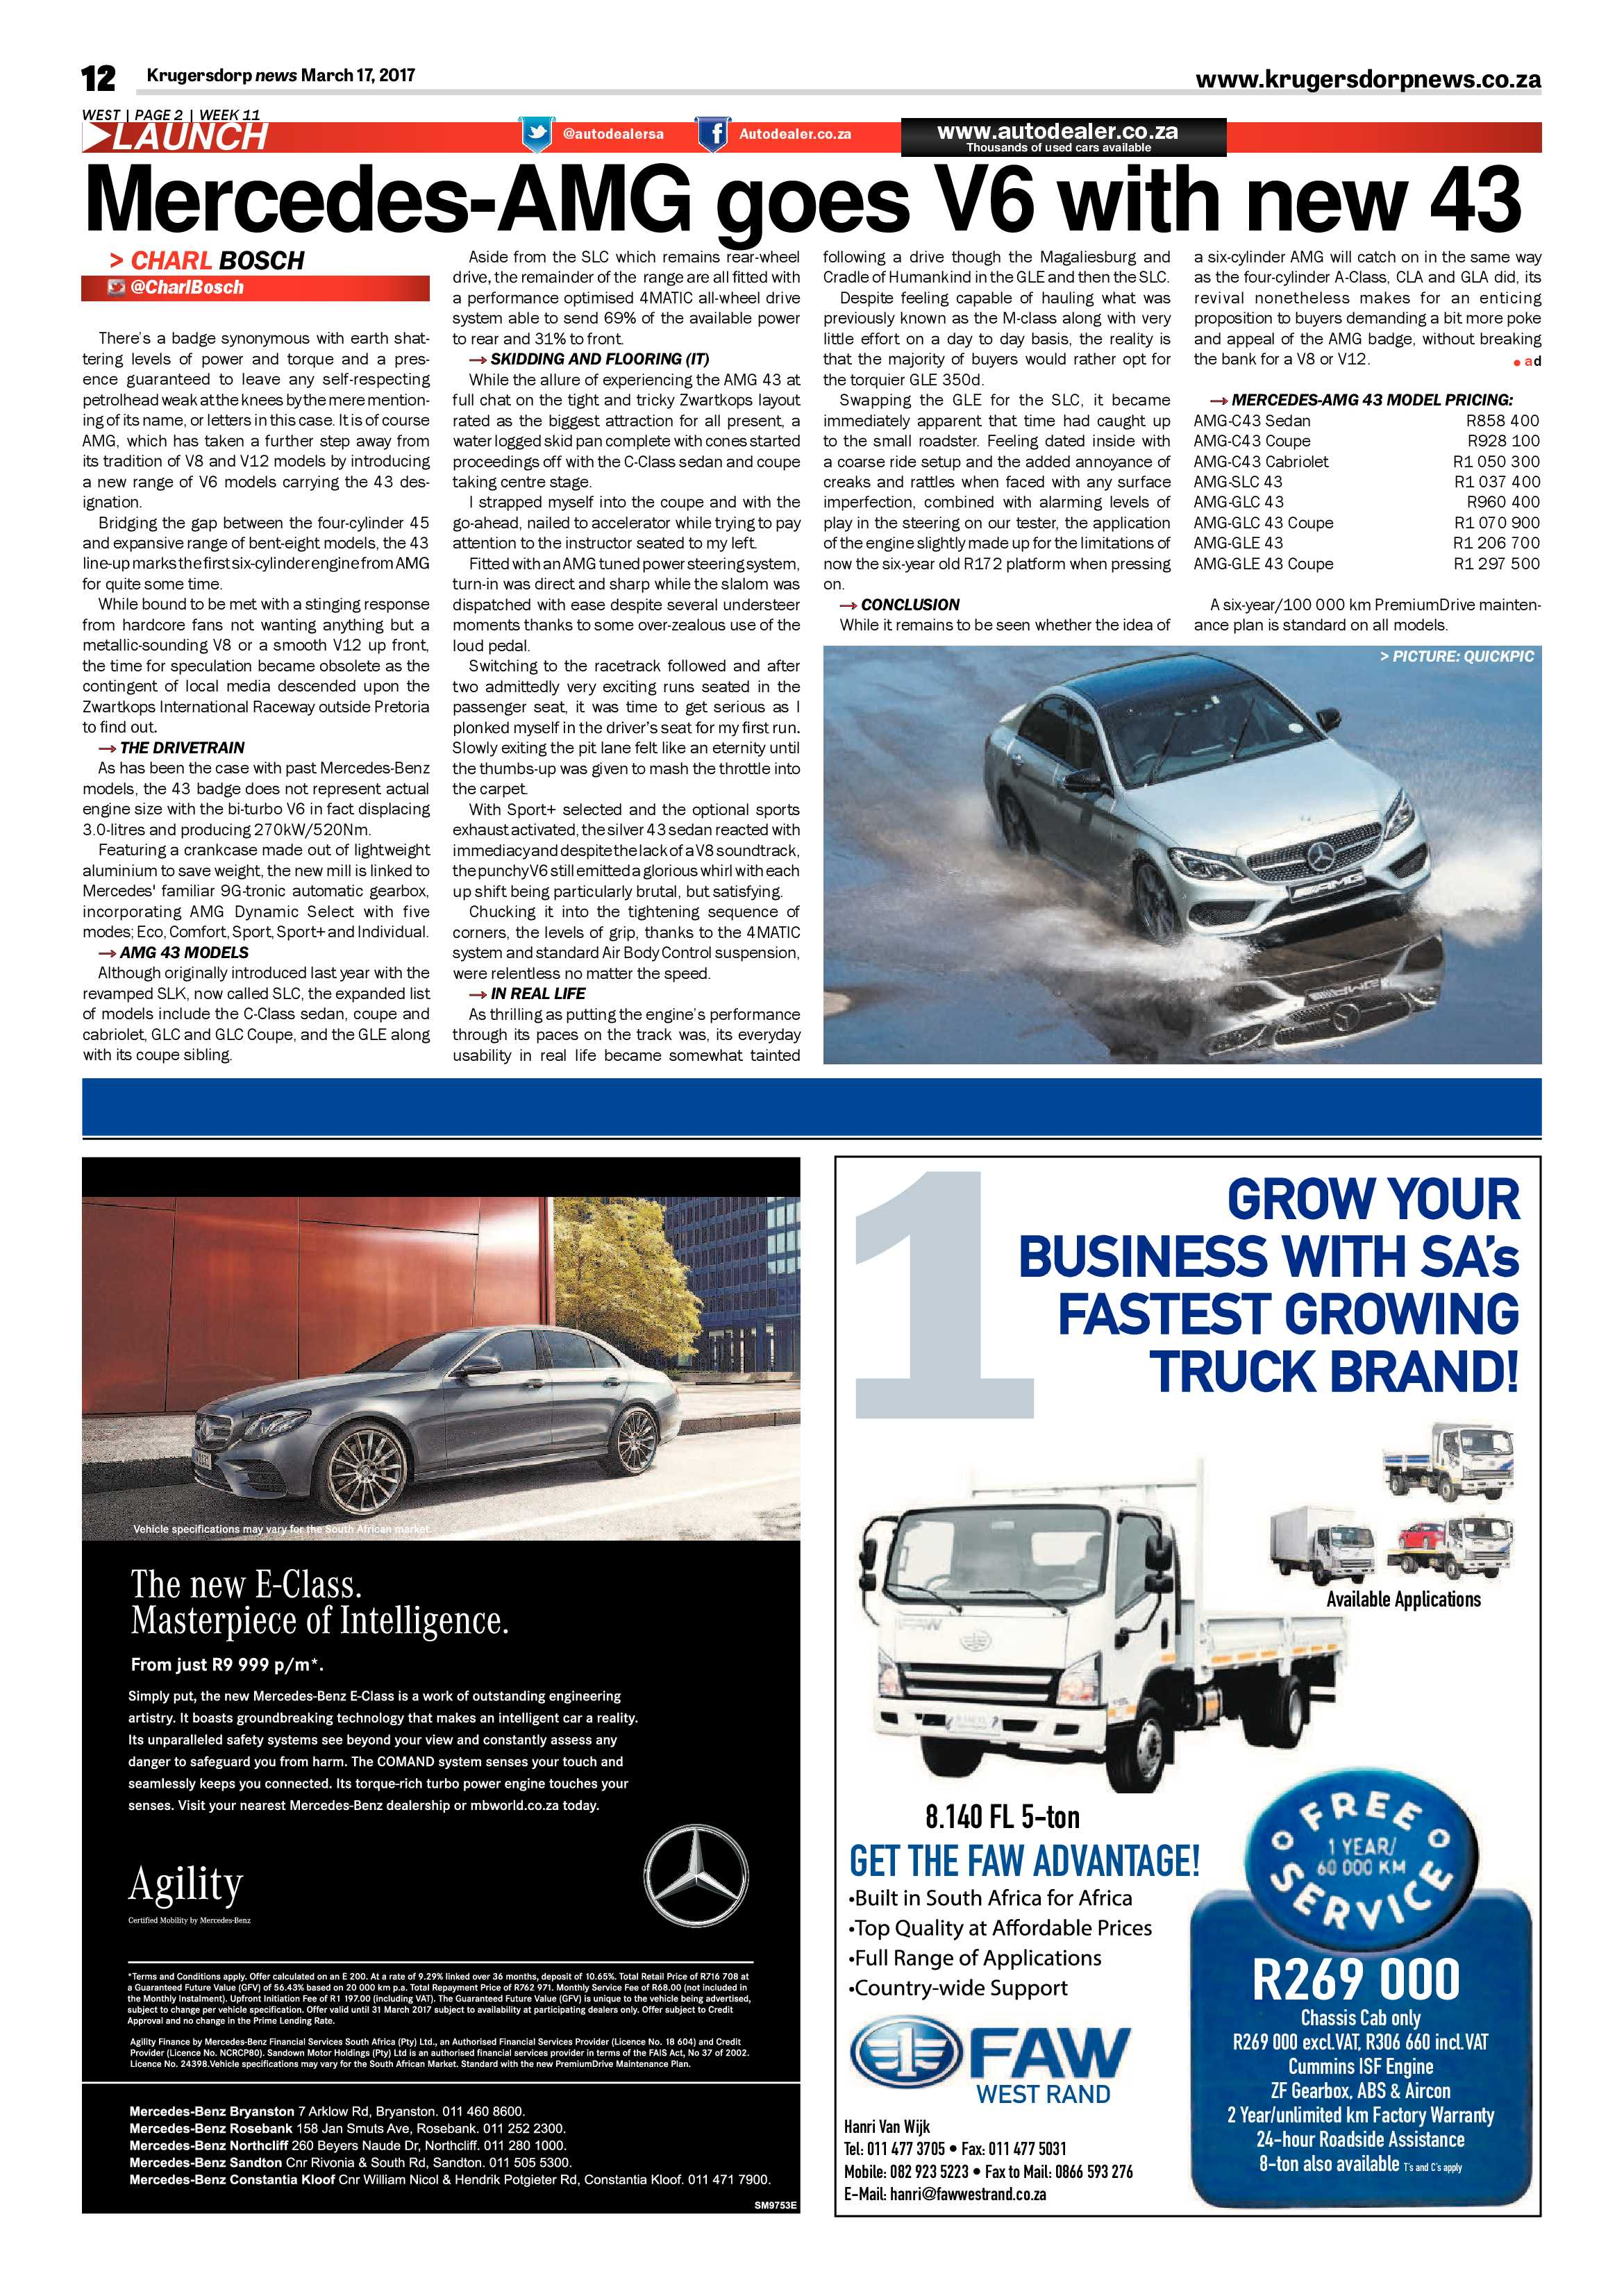 krugersdorp-news-17-march-2017-epapers-page-12